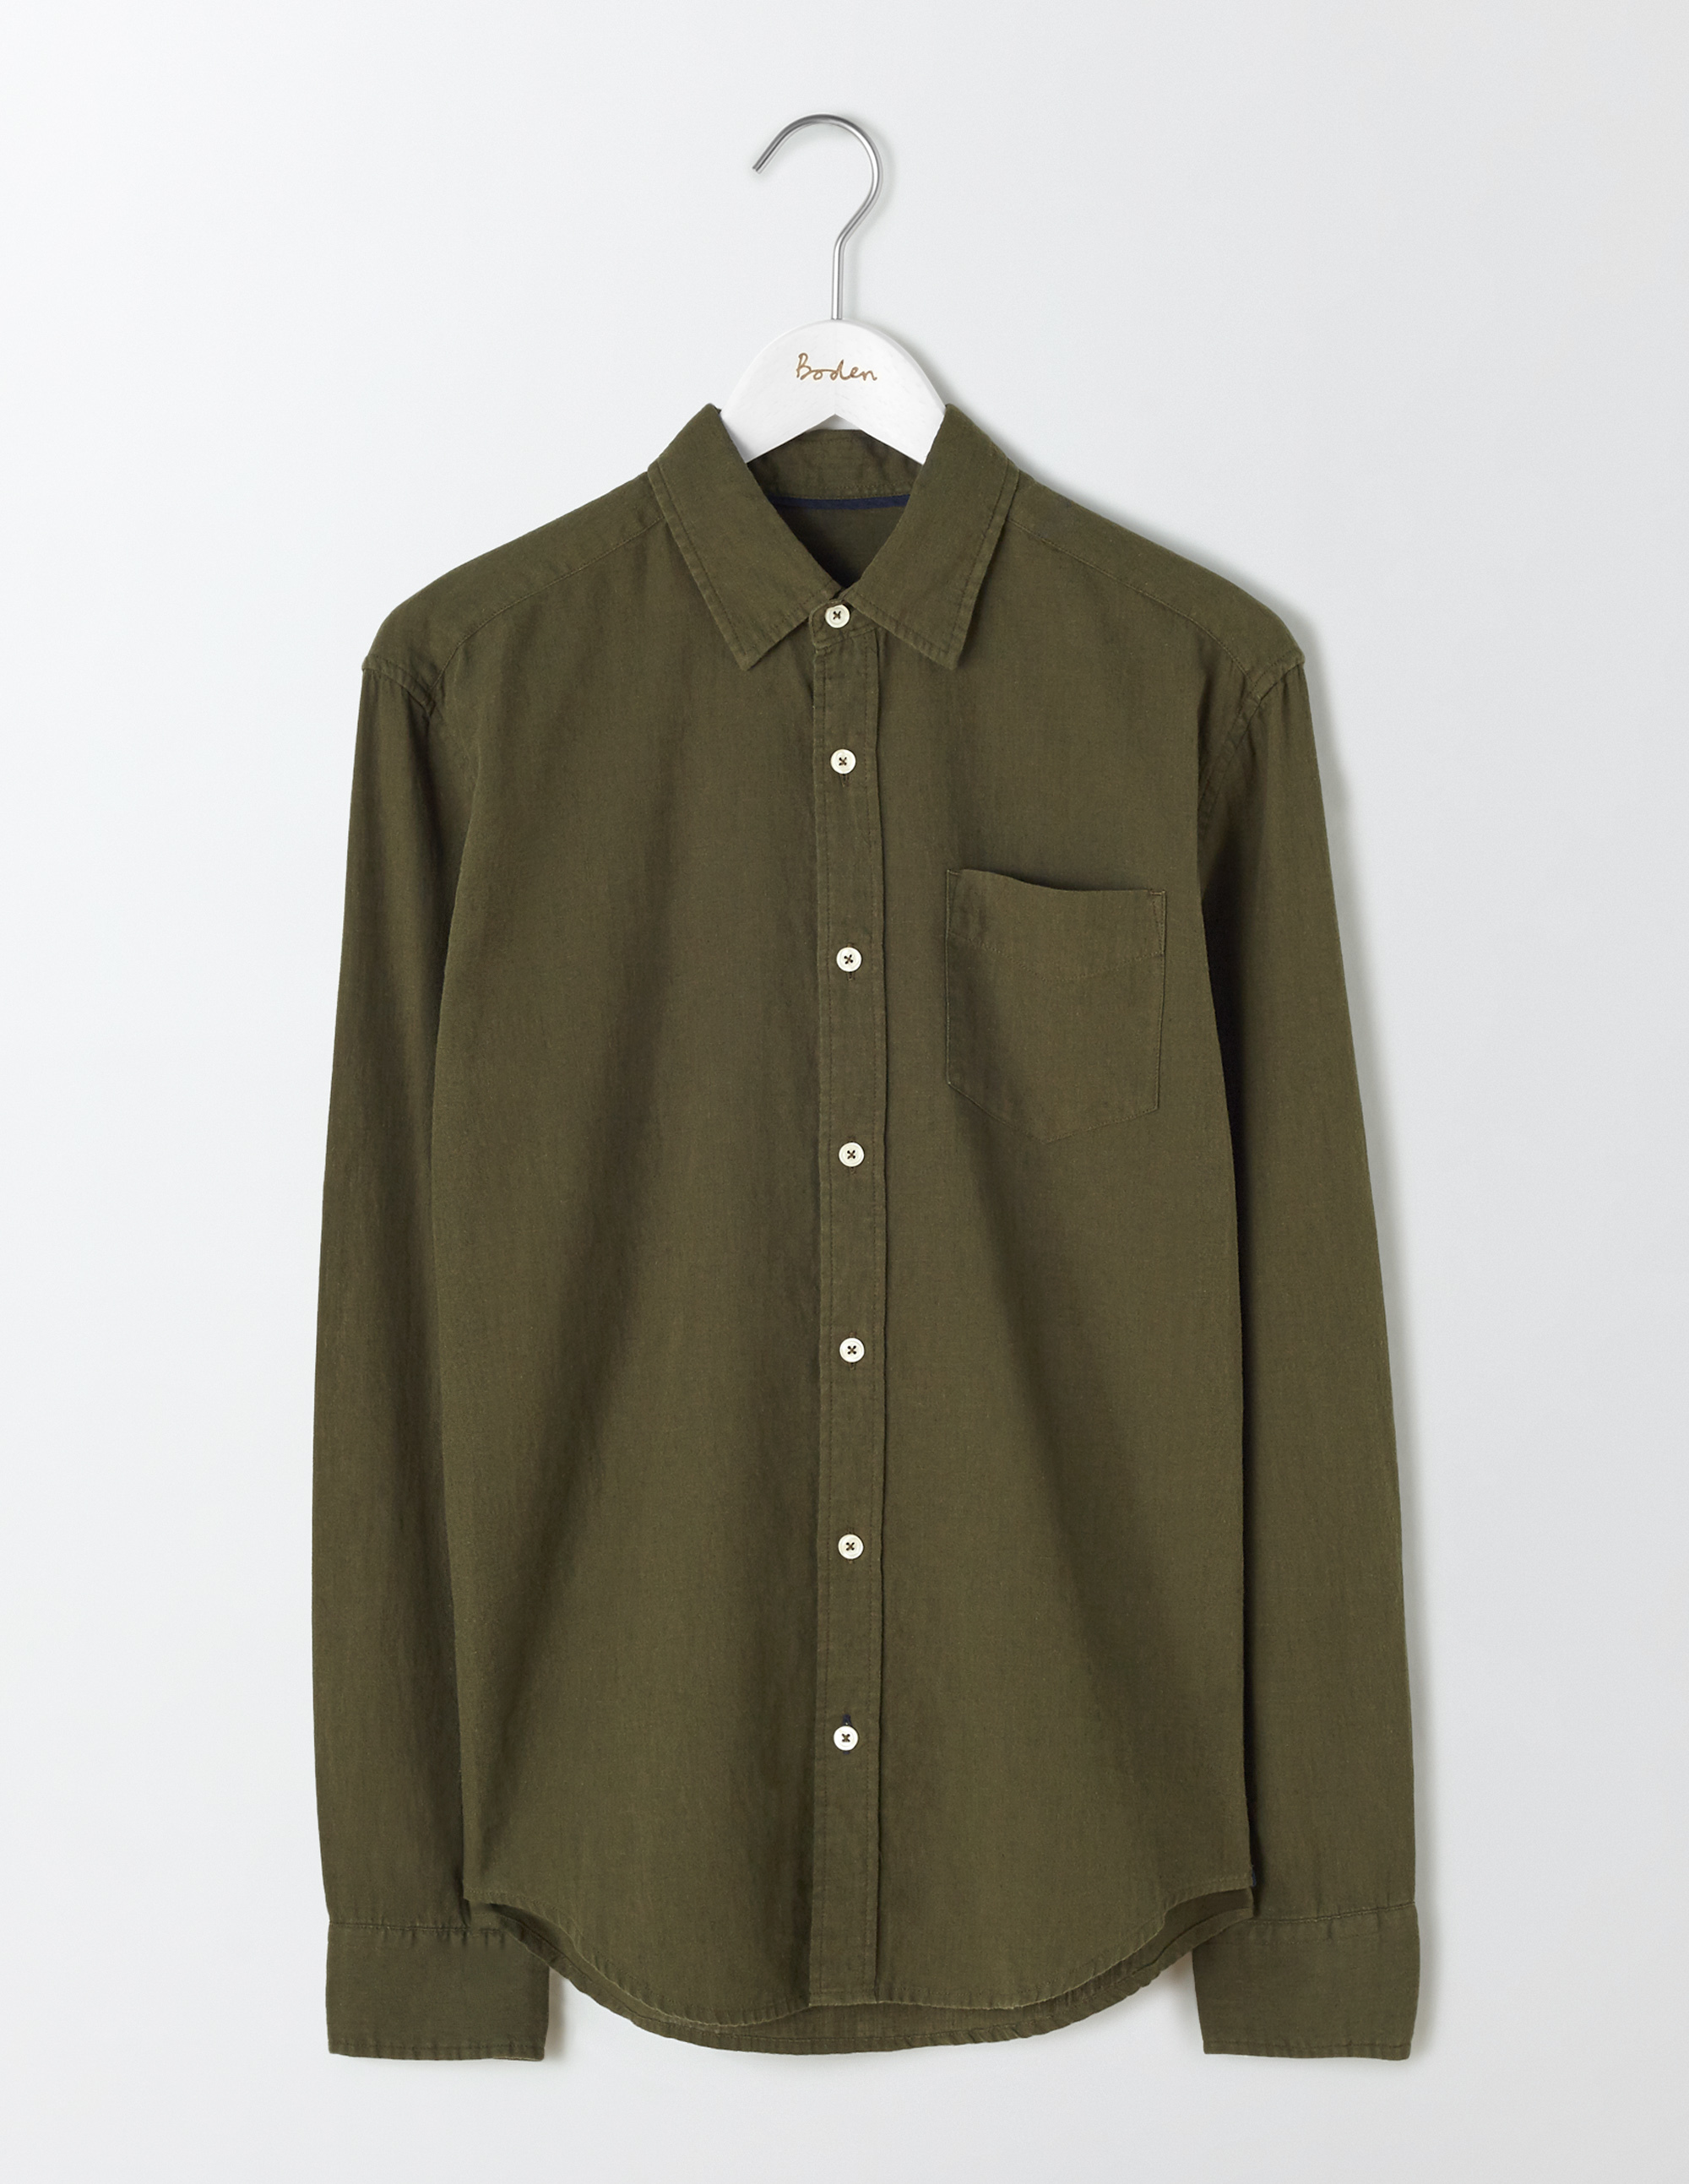 Boden Dark Olive Linen Cotton Shirt